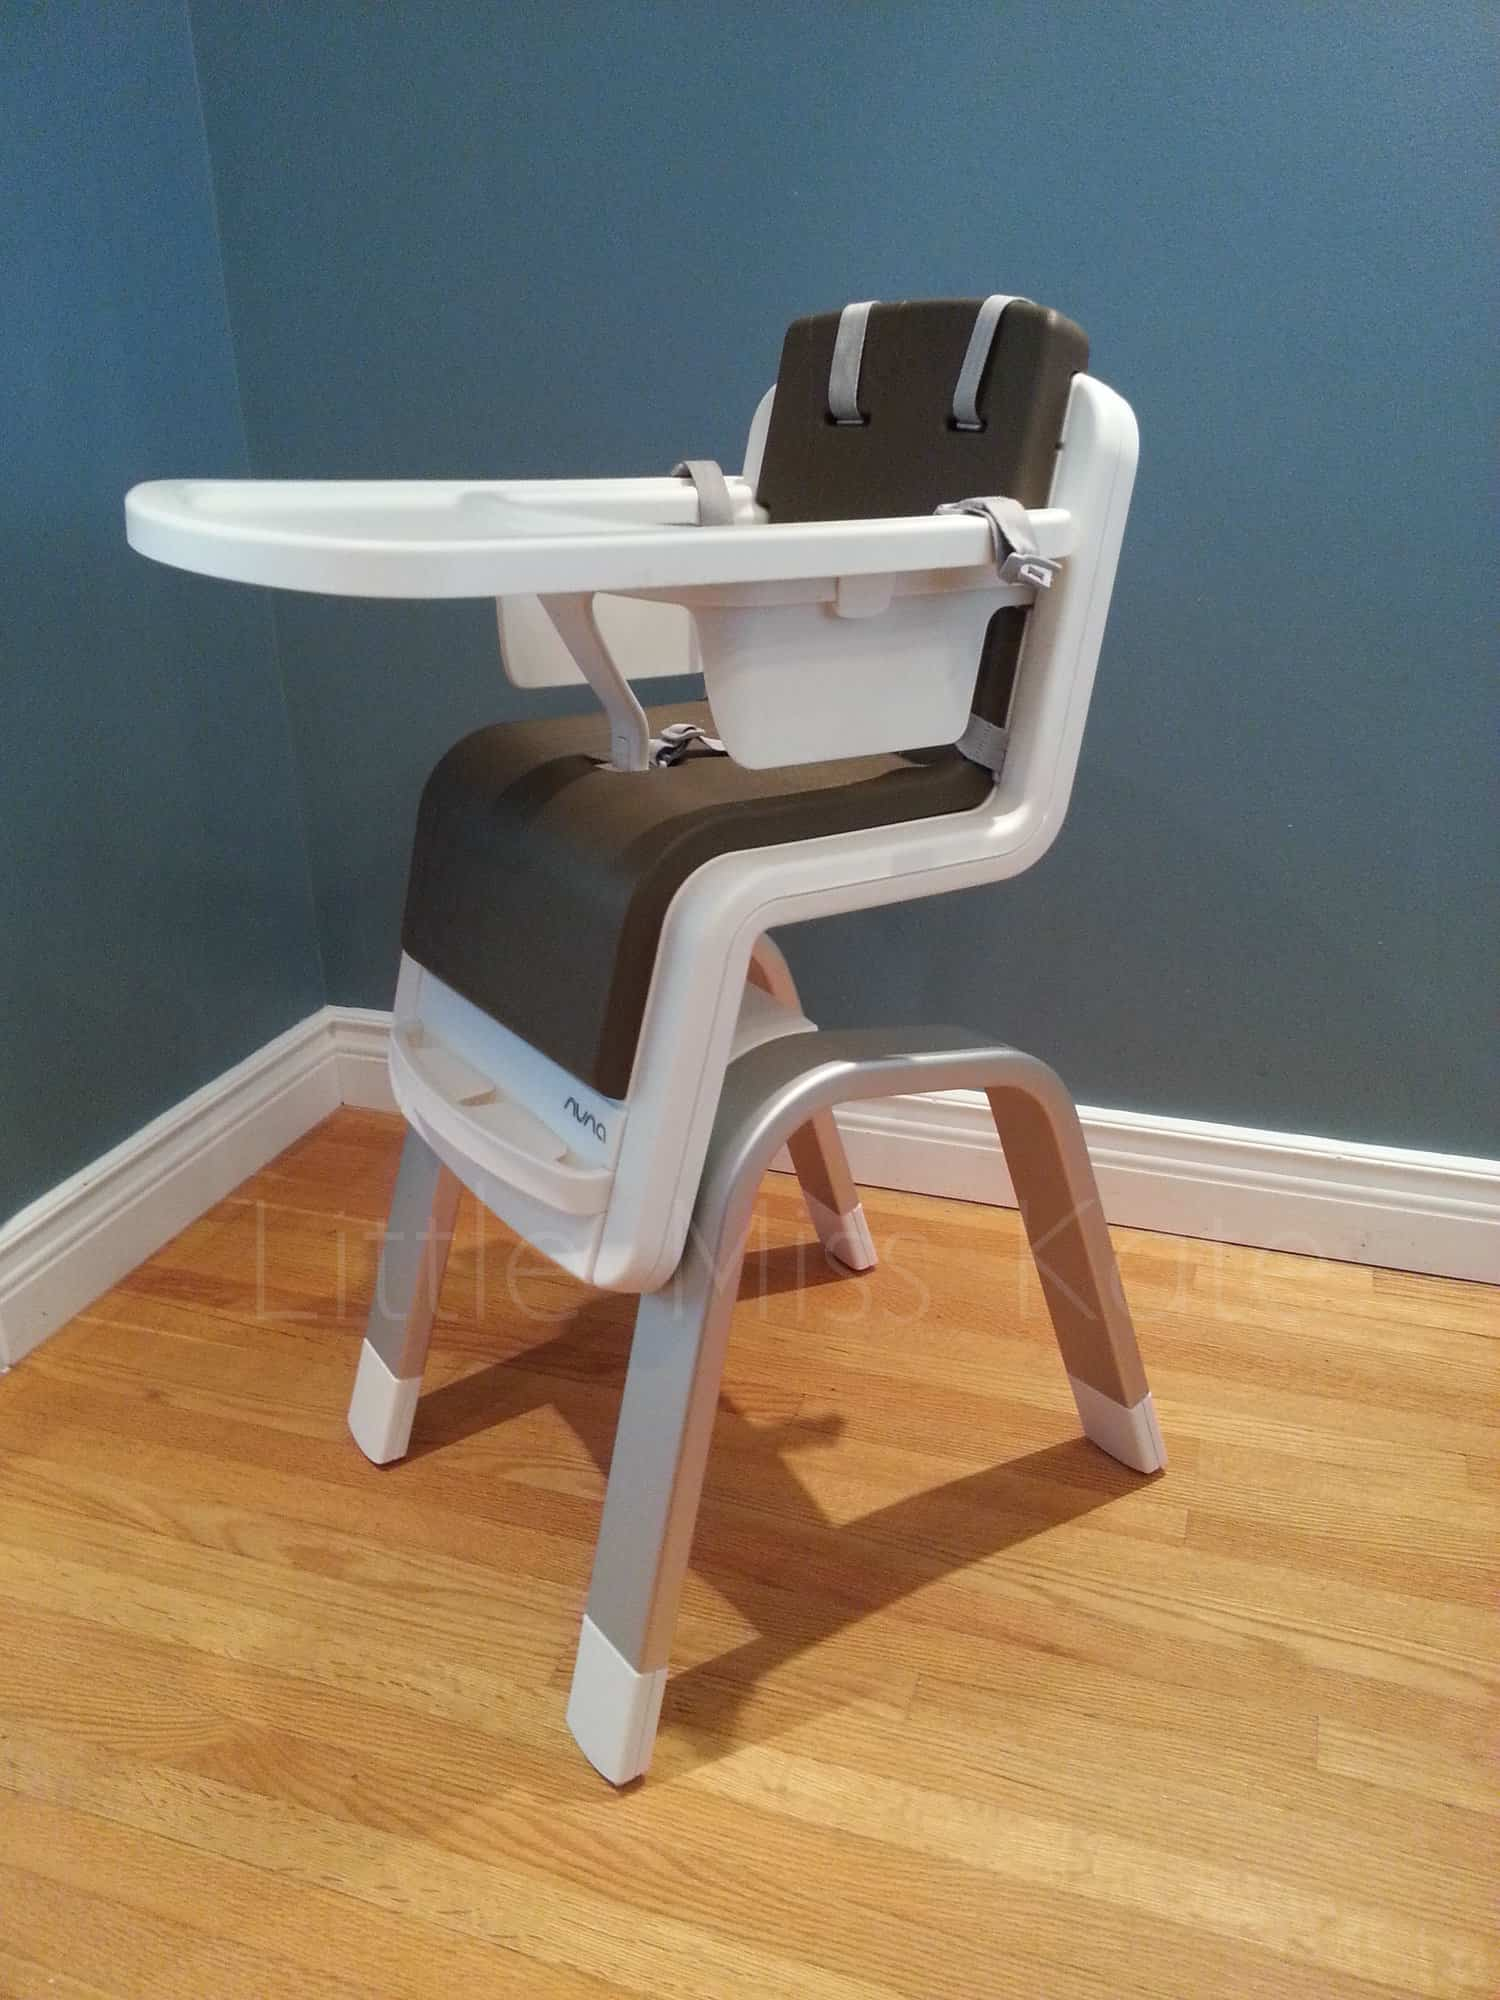 Nuna Zaaz high chair review & A Chair that lasts from infants to adults?!? Nuna Zaaz High Chair ...